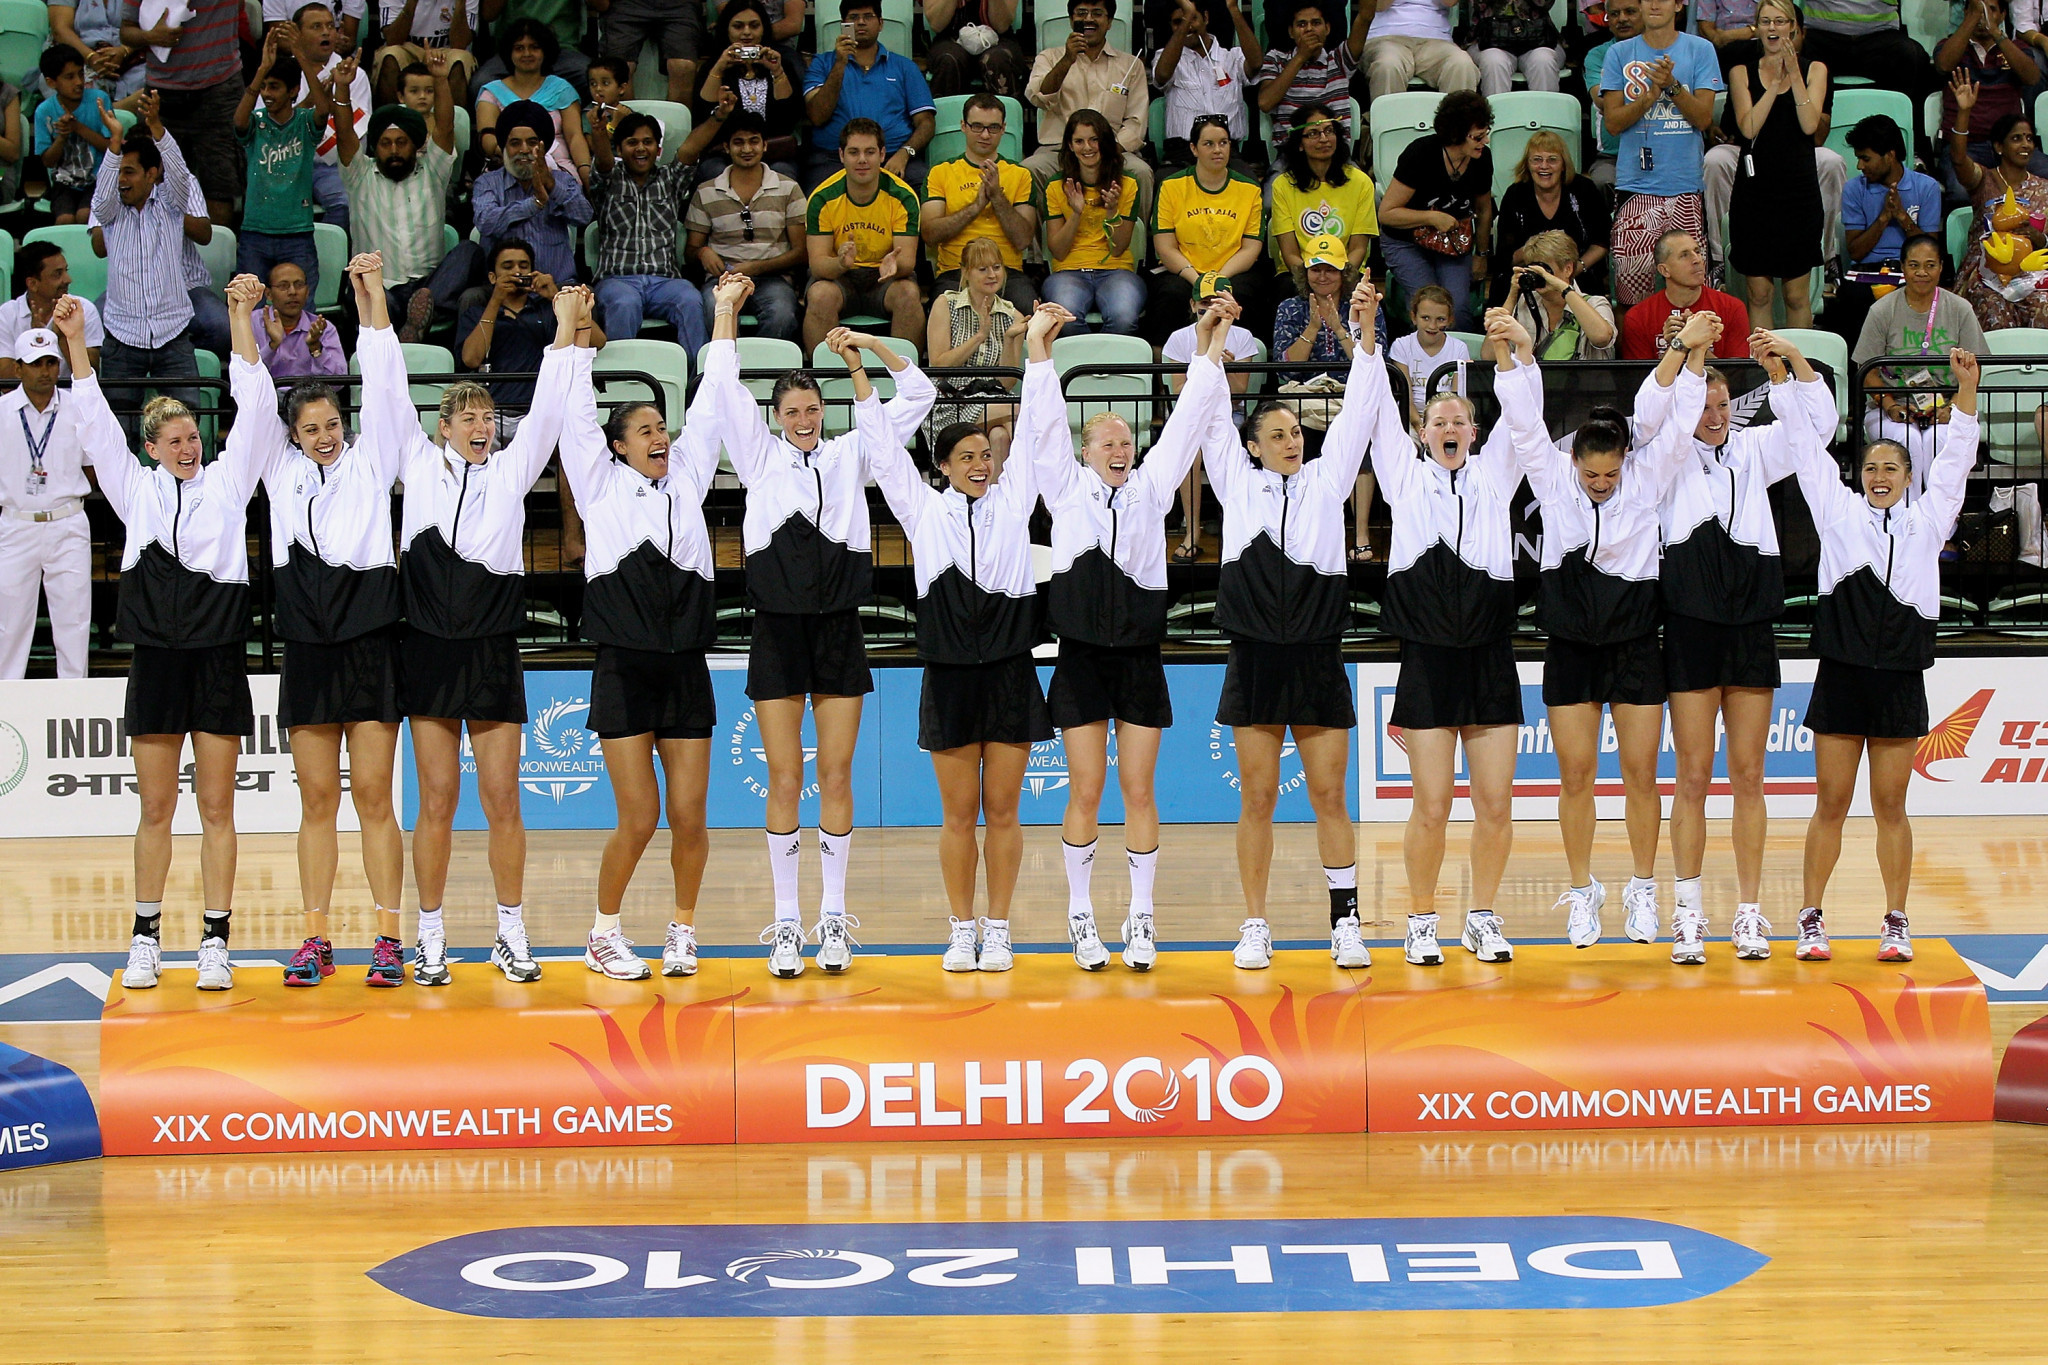 New Zealand will be looking to reclaim the netball title at Gold Coast 2018 after last winning at Delhi 2010 ©Getty Images